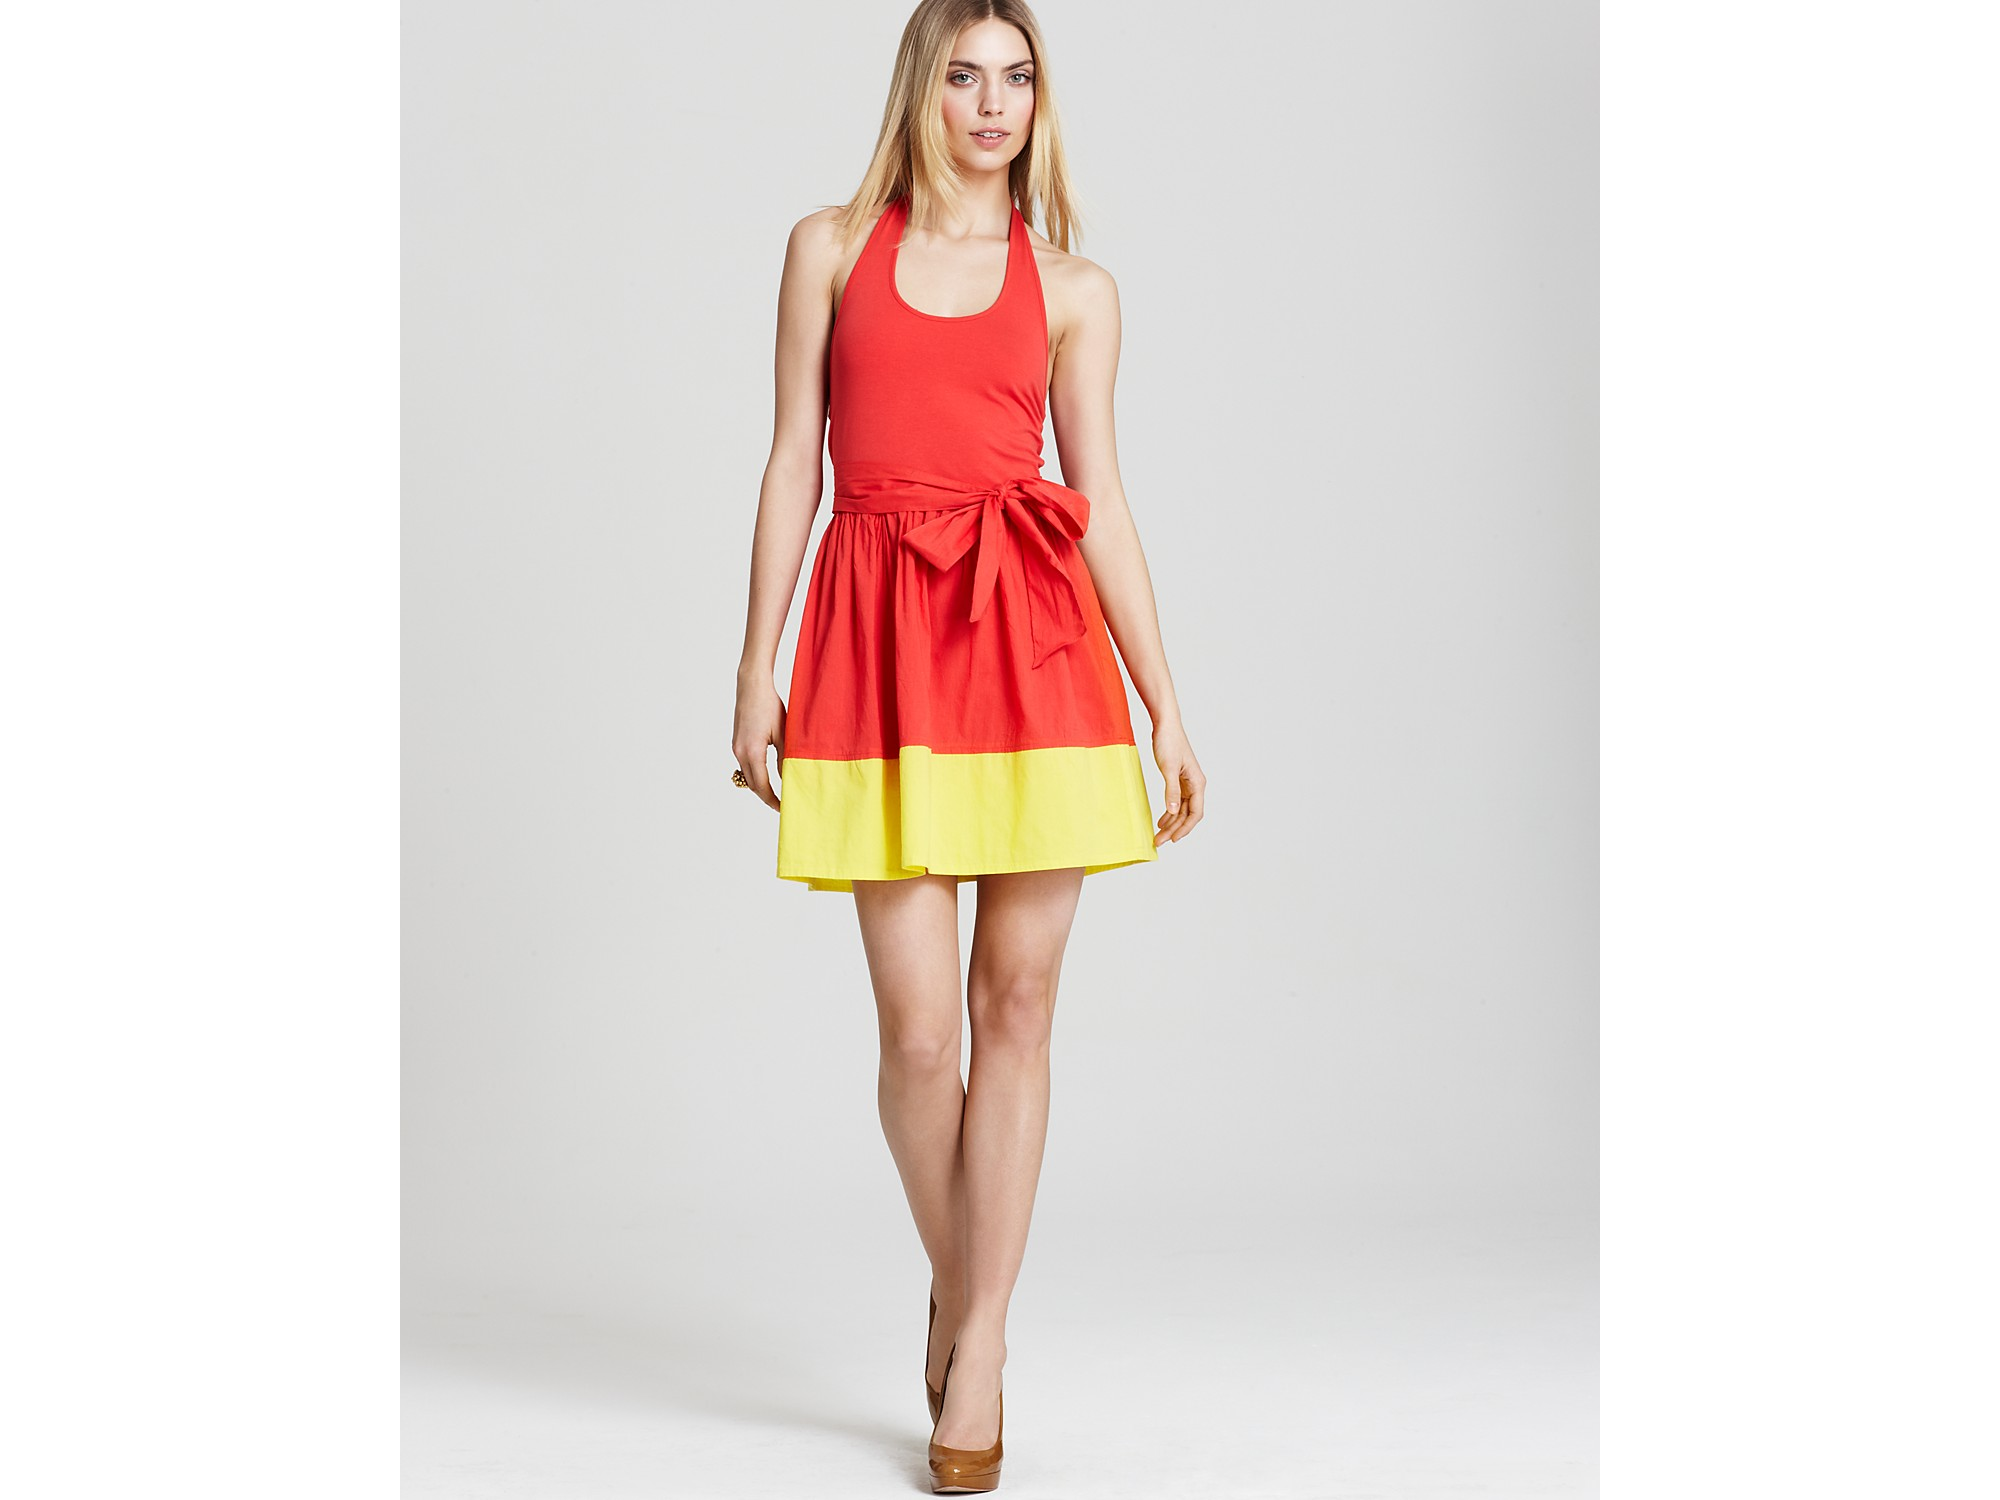 Red and yellow makes what color is the dress